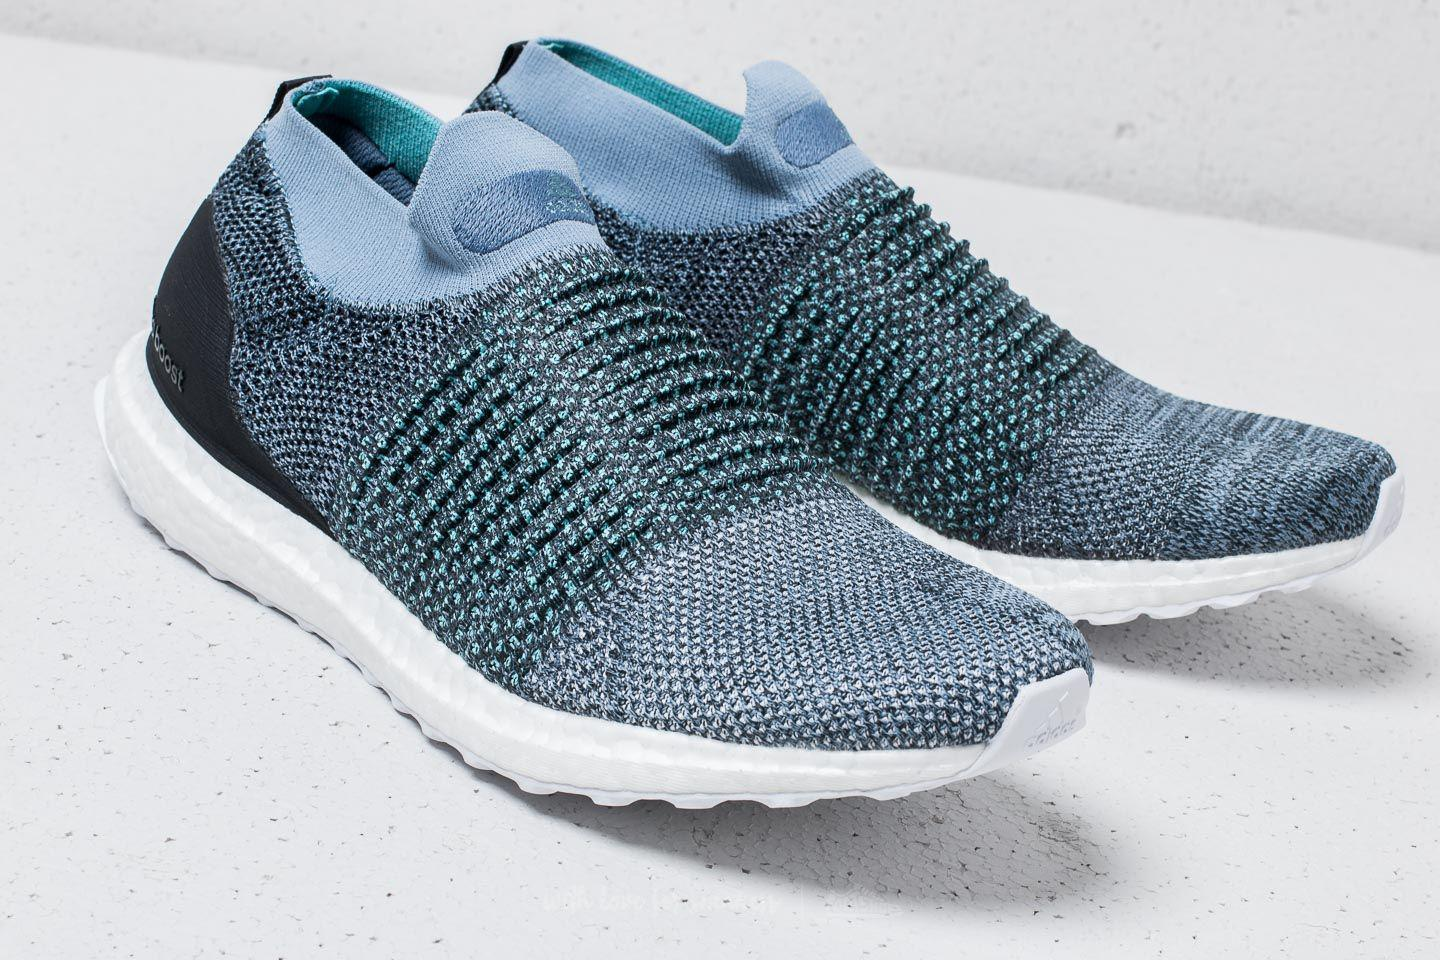 075dd941471 Lyst footshop adidas parley ultraboost laceless raw grey carbon jpg  1440x960 Ultra boost uncaged laceless